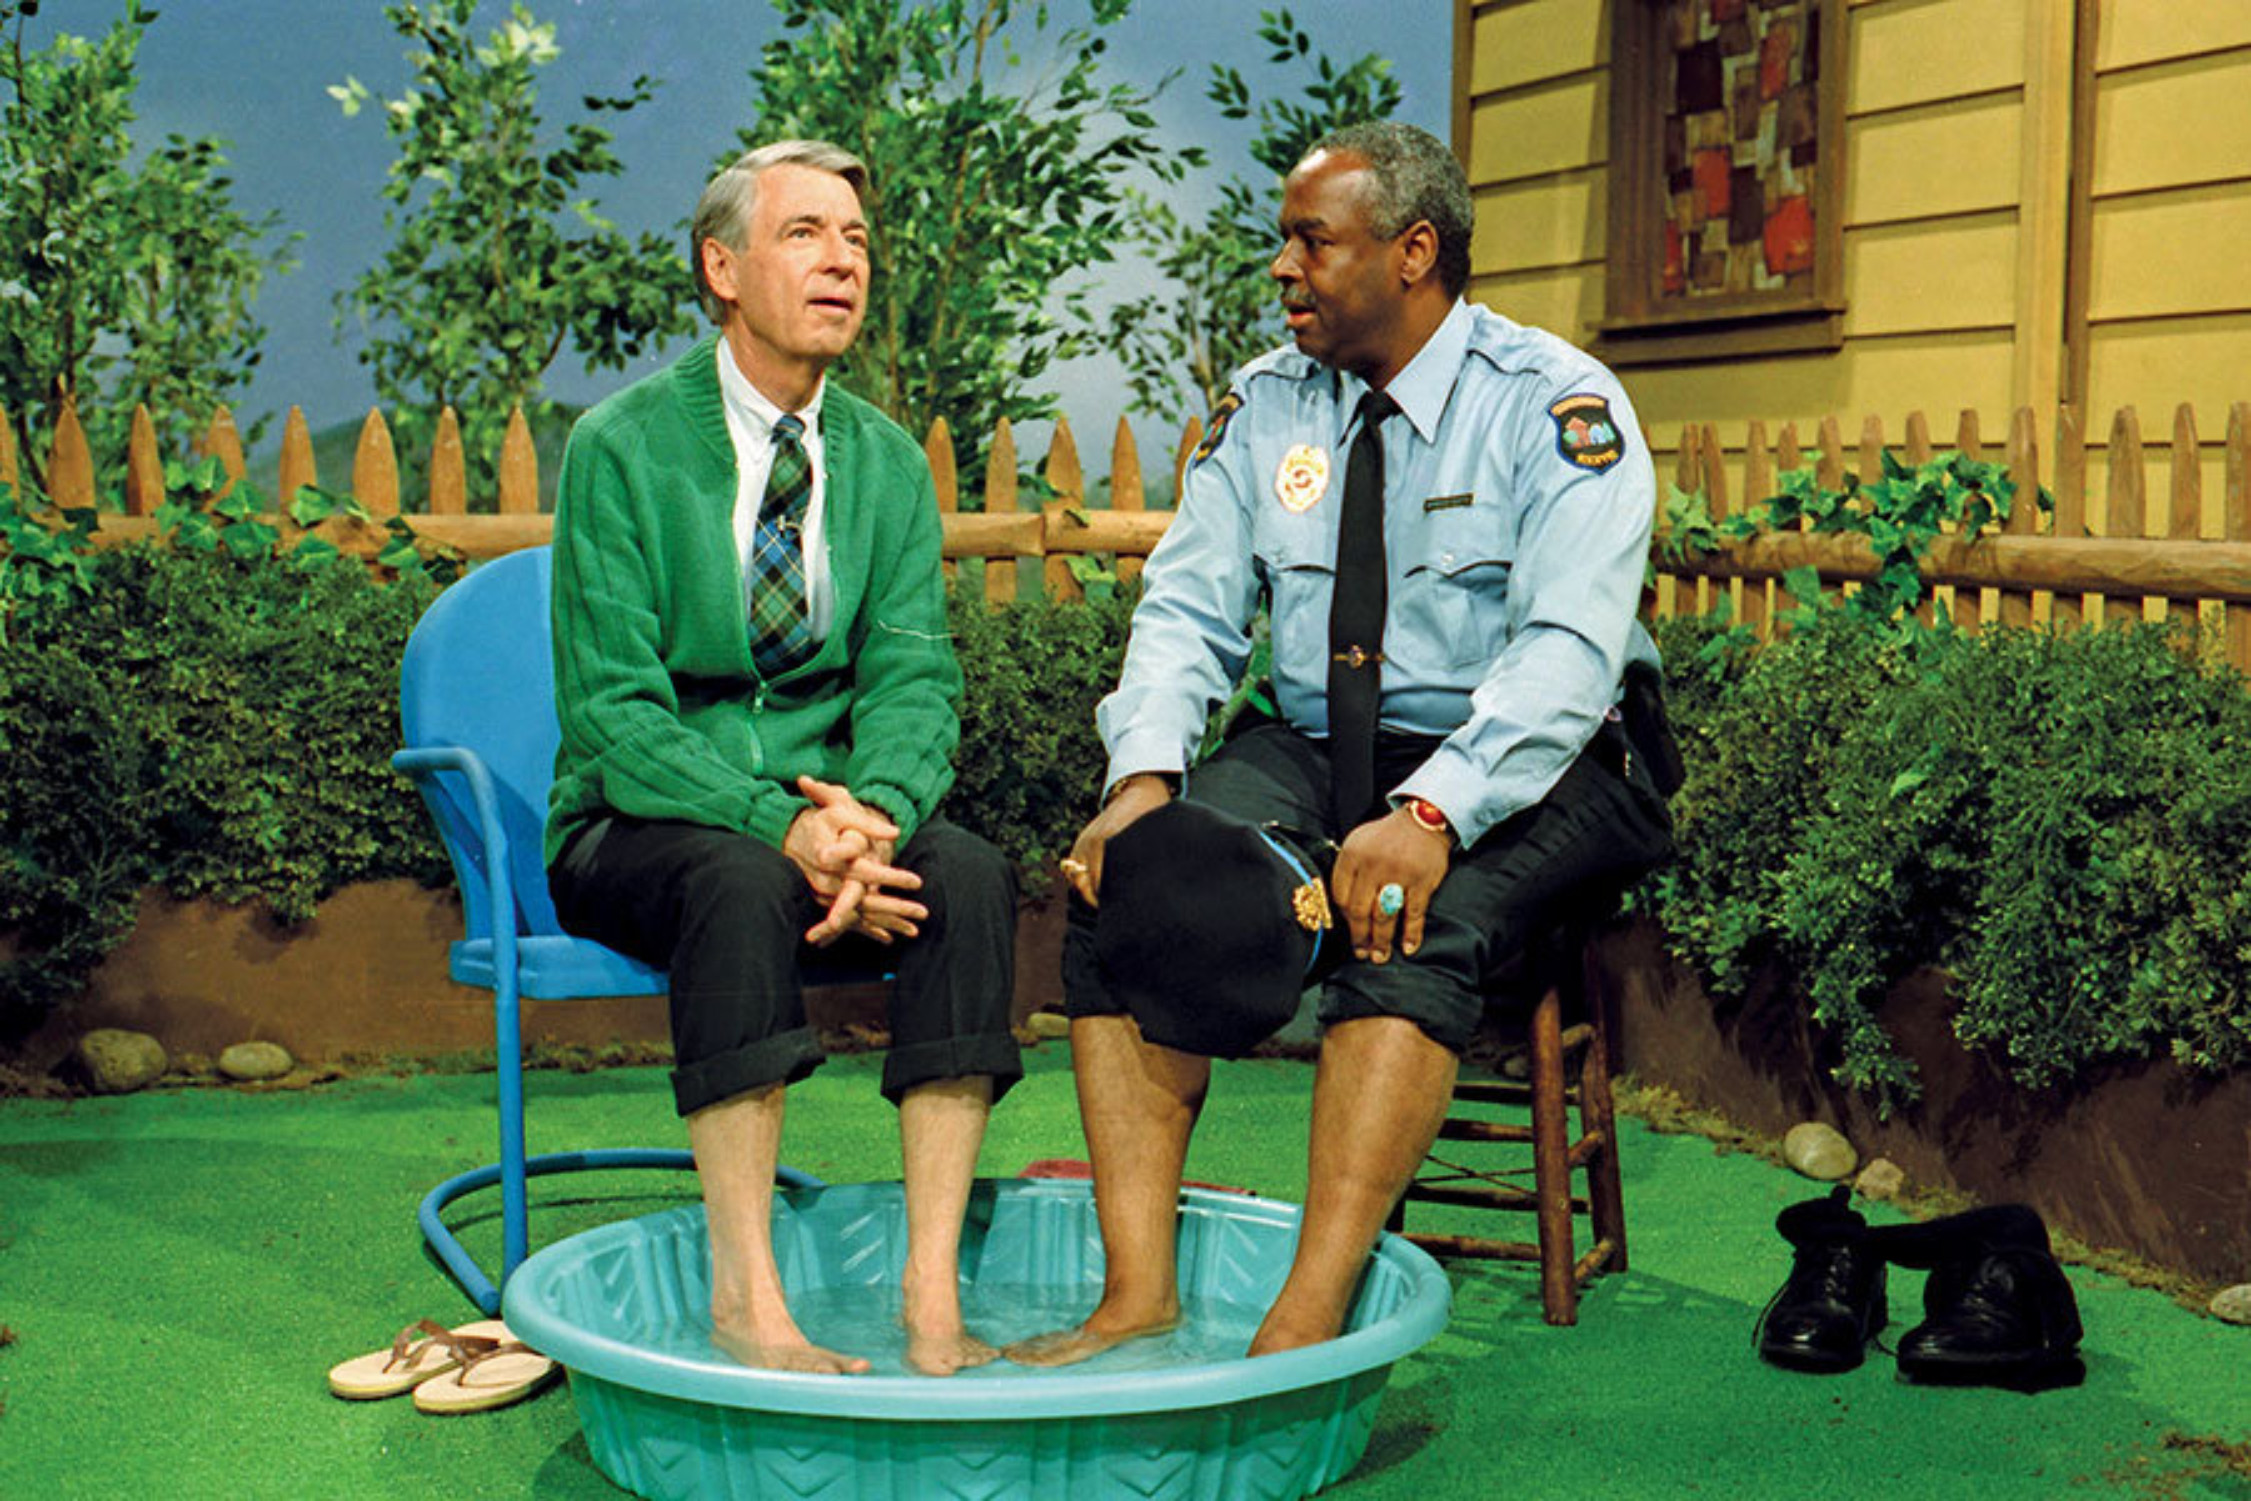 Fred Rogers and Fran�ois Clemmons cool off in Wont You Be My Neighbor. (Focus Features)